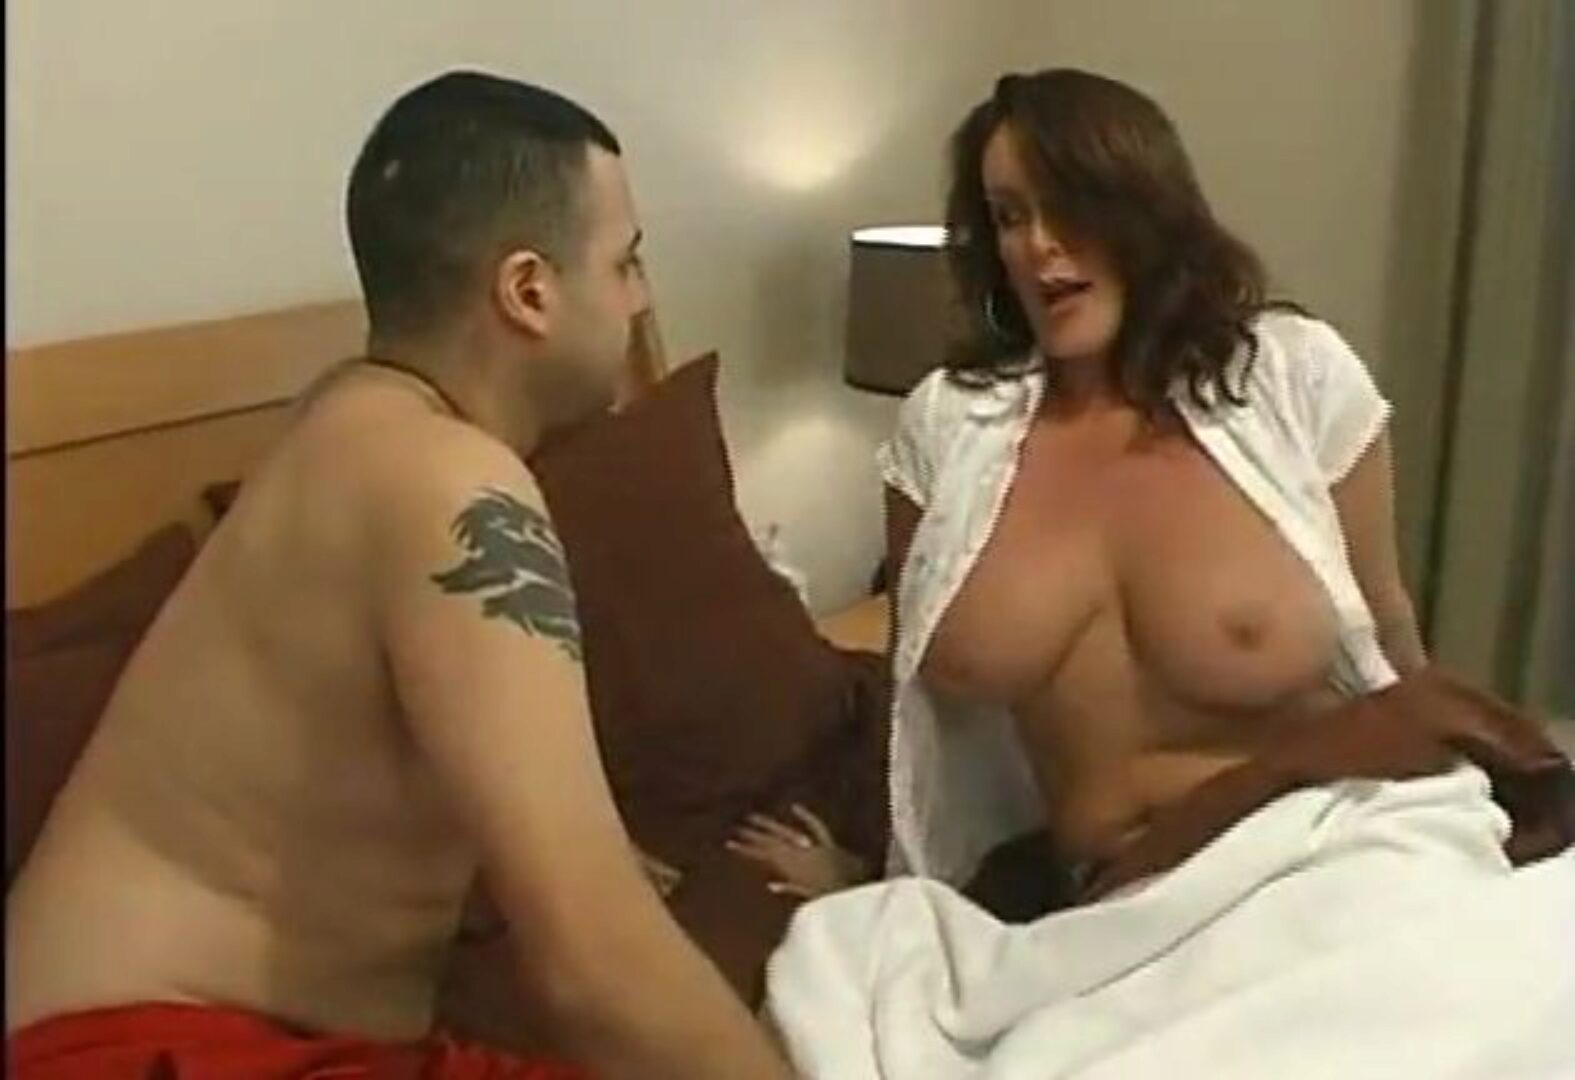 Mom Says Don't Cum Inside Me, But Son Forces & Creampies Mom Part two Mature mom and youthful sonnie have rock-hard bang-out Mom sob and and requests son not spunk inside her. But her excited stepson doesn't listen to that. He forces her mommy and lastly fill her vagina with his jizm